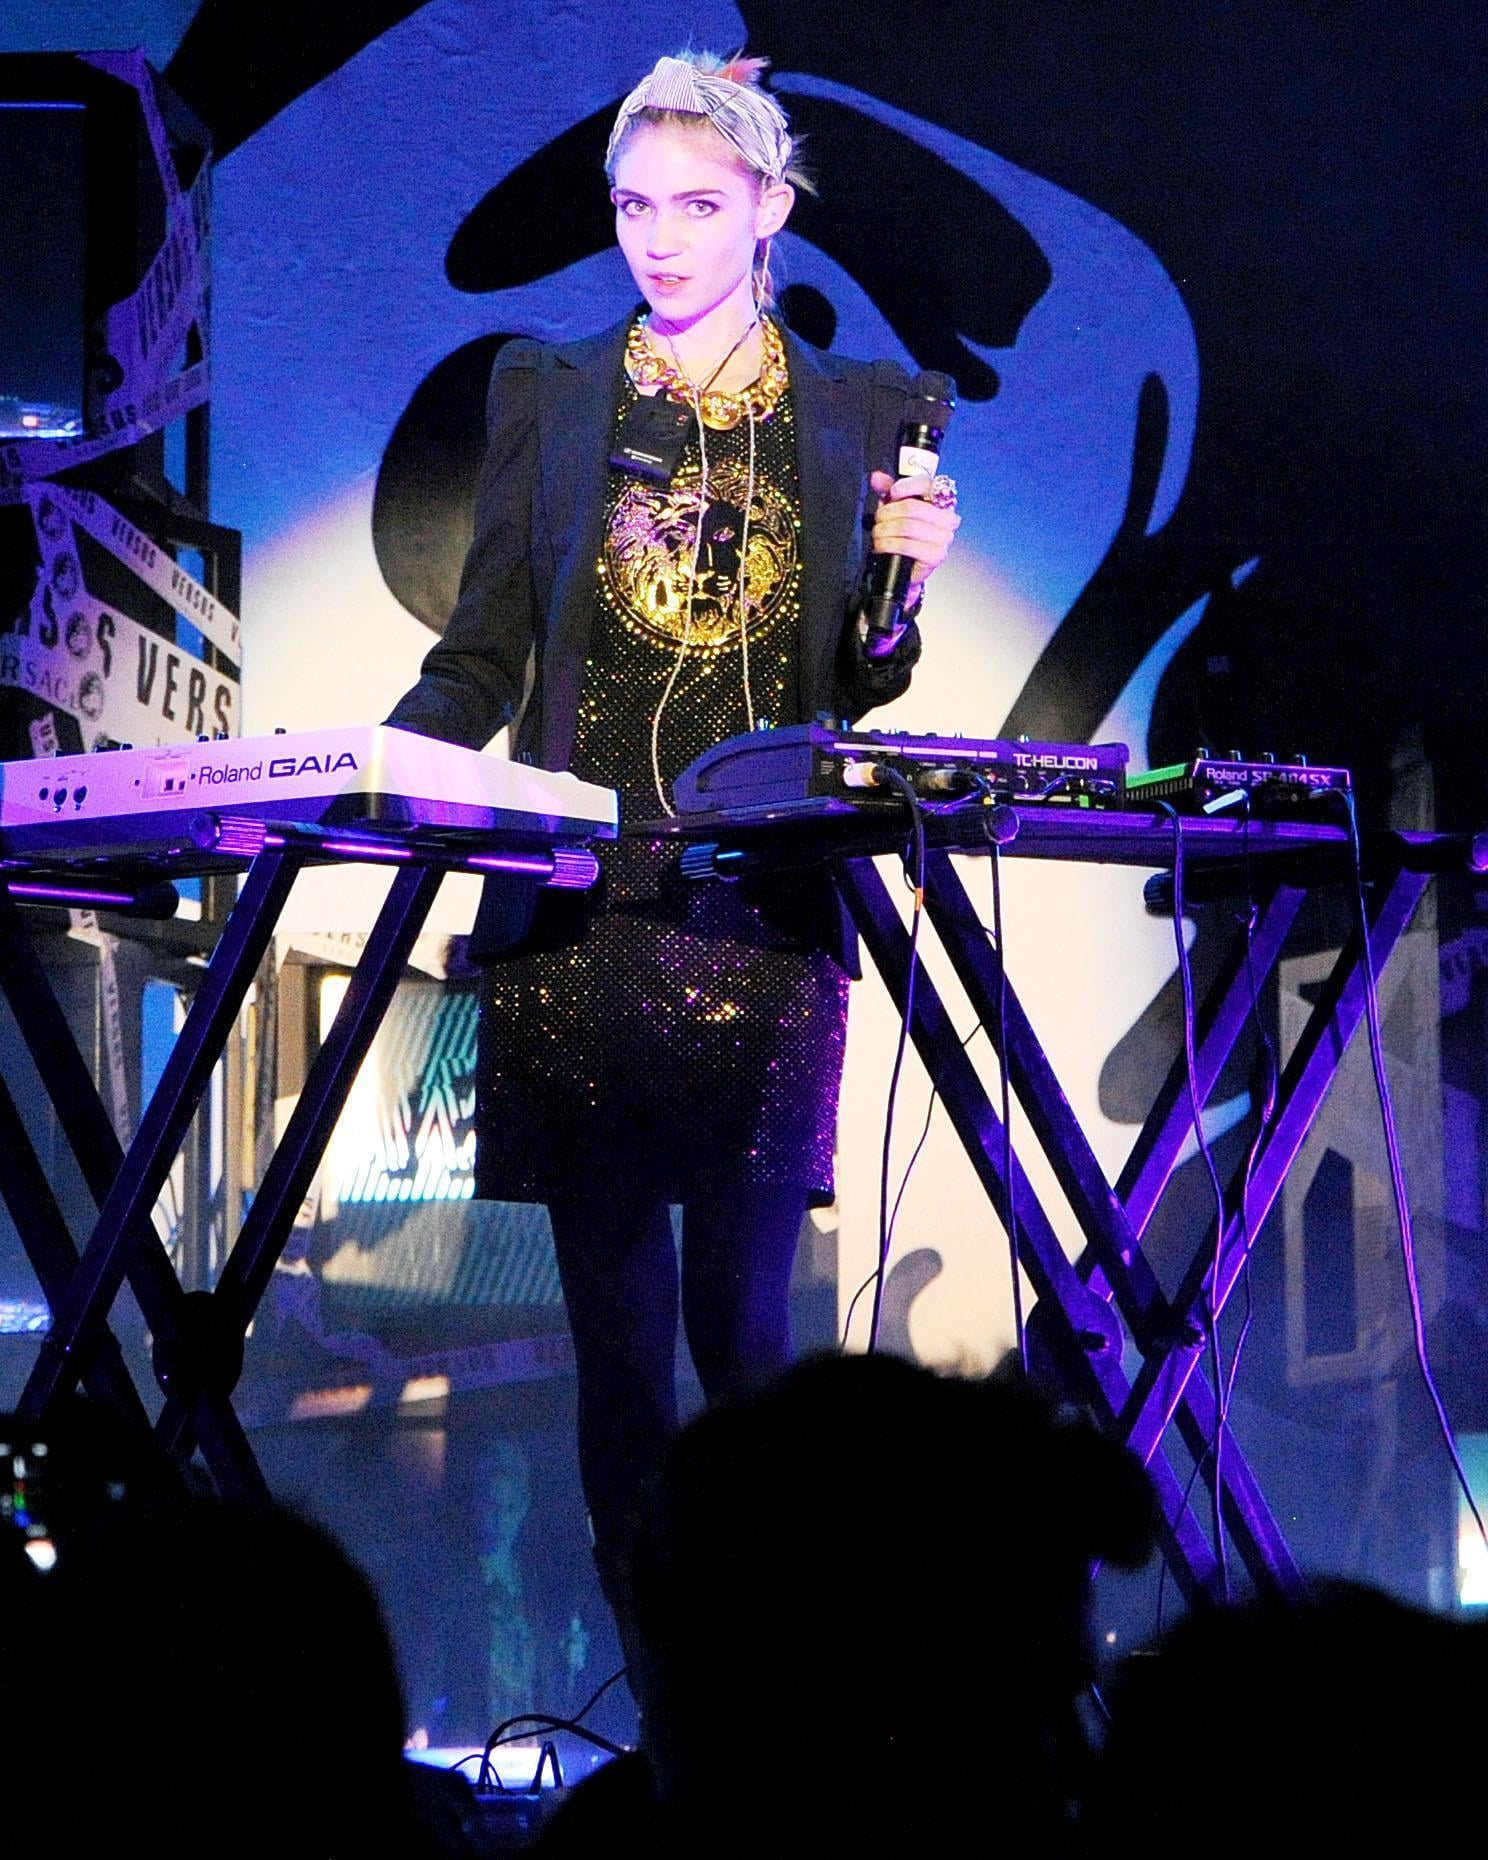 Grimes performed at the JW Anderson for Versus launch party. Source: Billy Farrell/BFAnyc.com